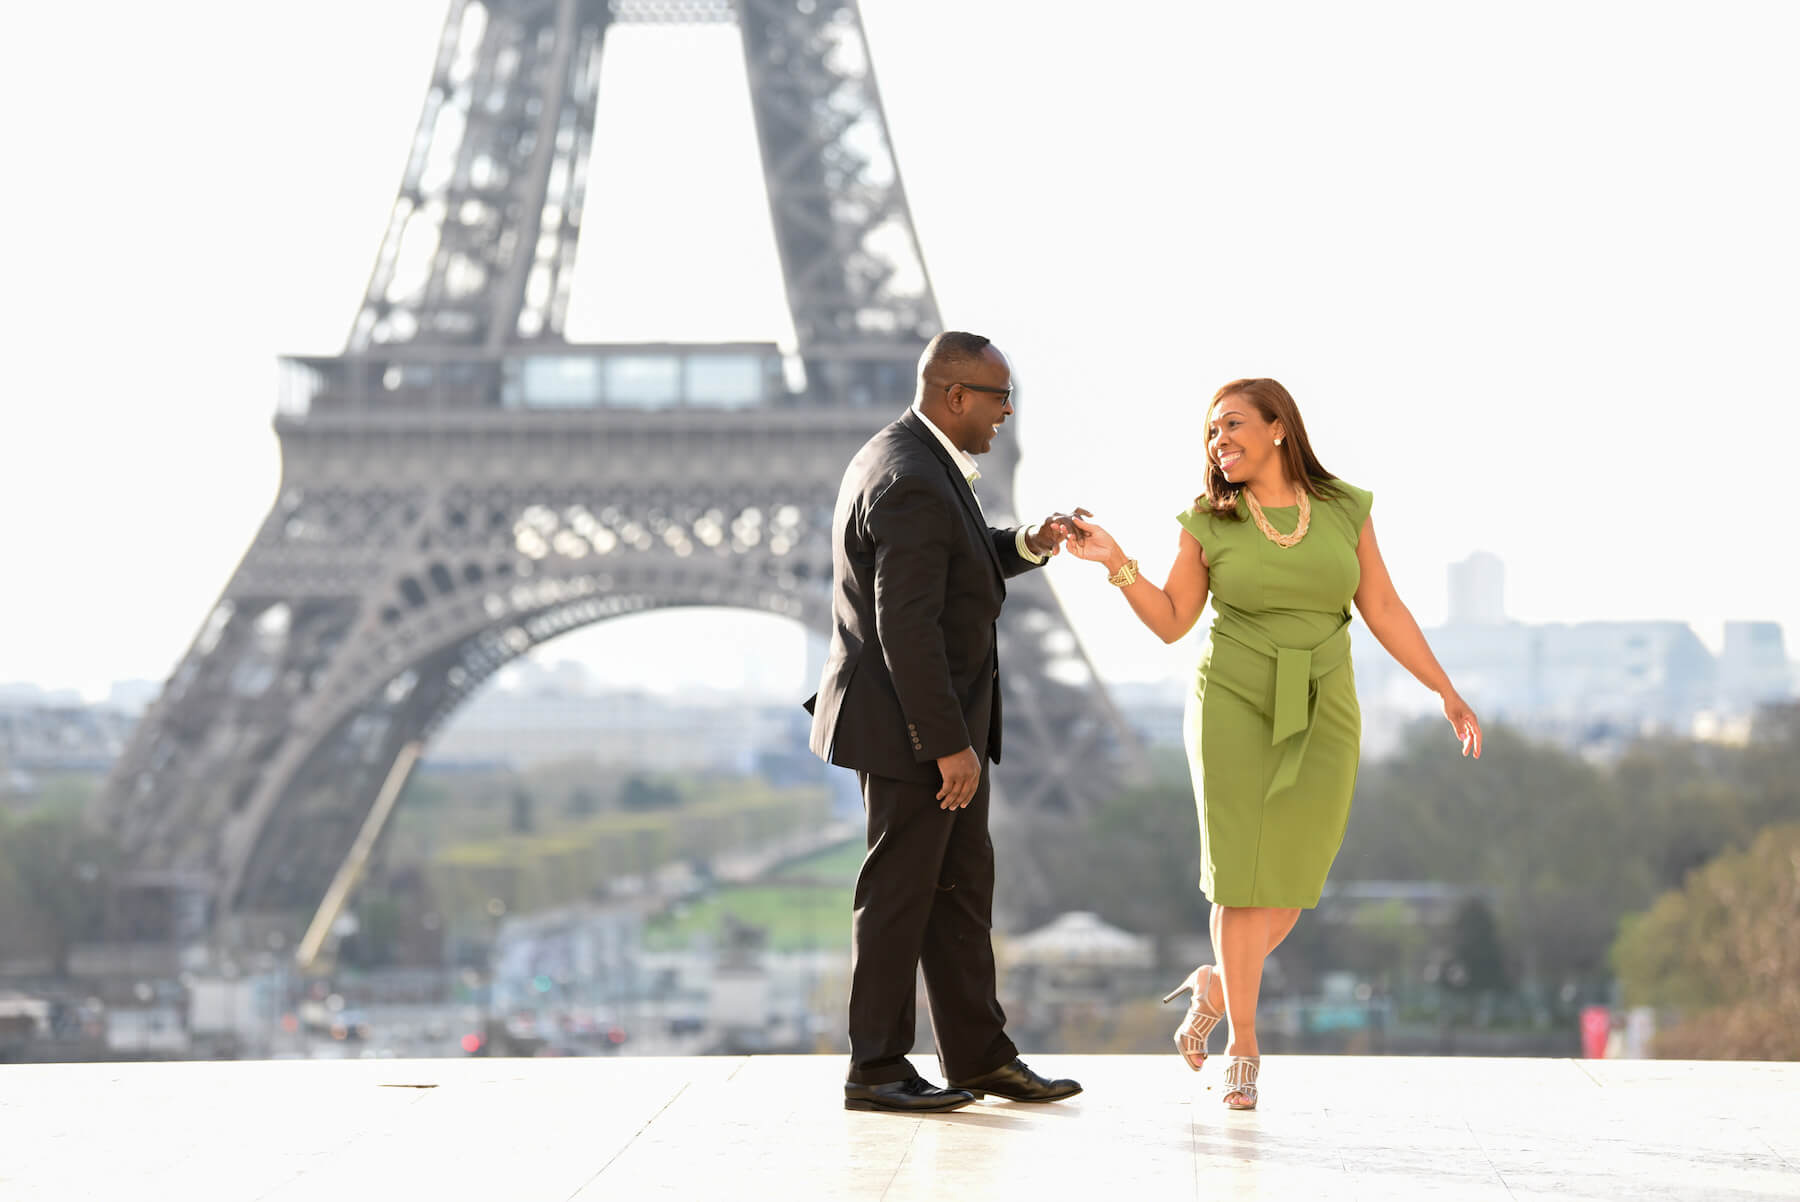 older couple holding hands and dancing with the Eiffel Tower in the background in Paris, France